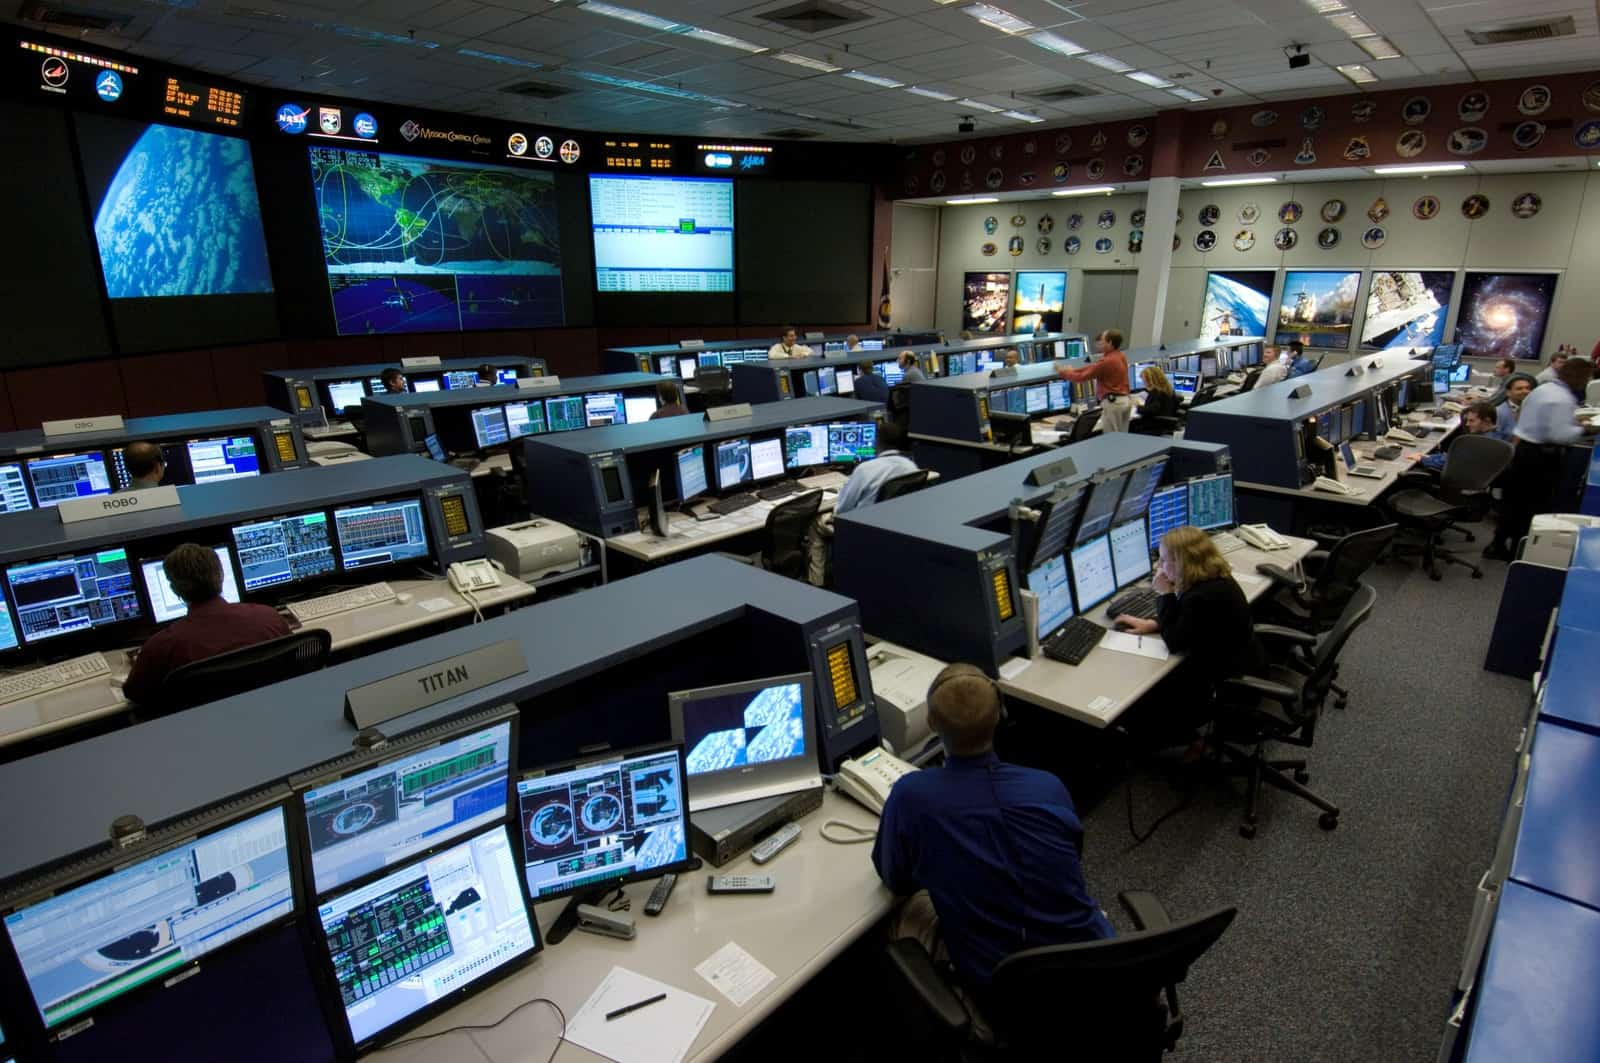 Large flight control room with computers and screens